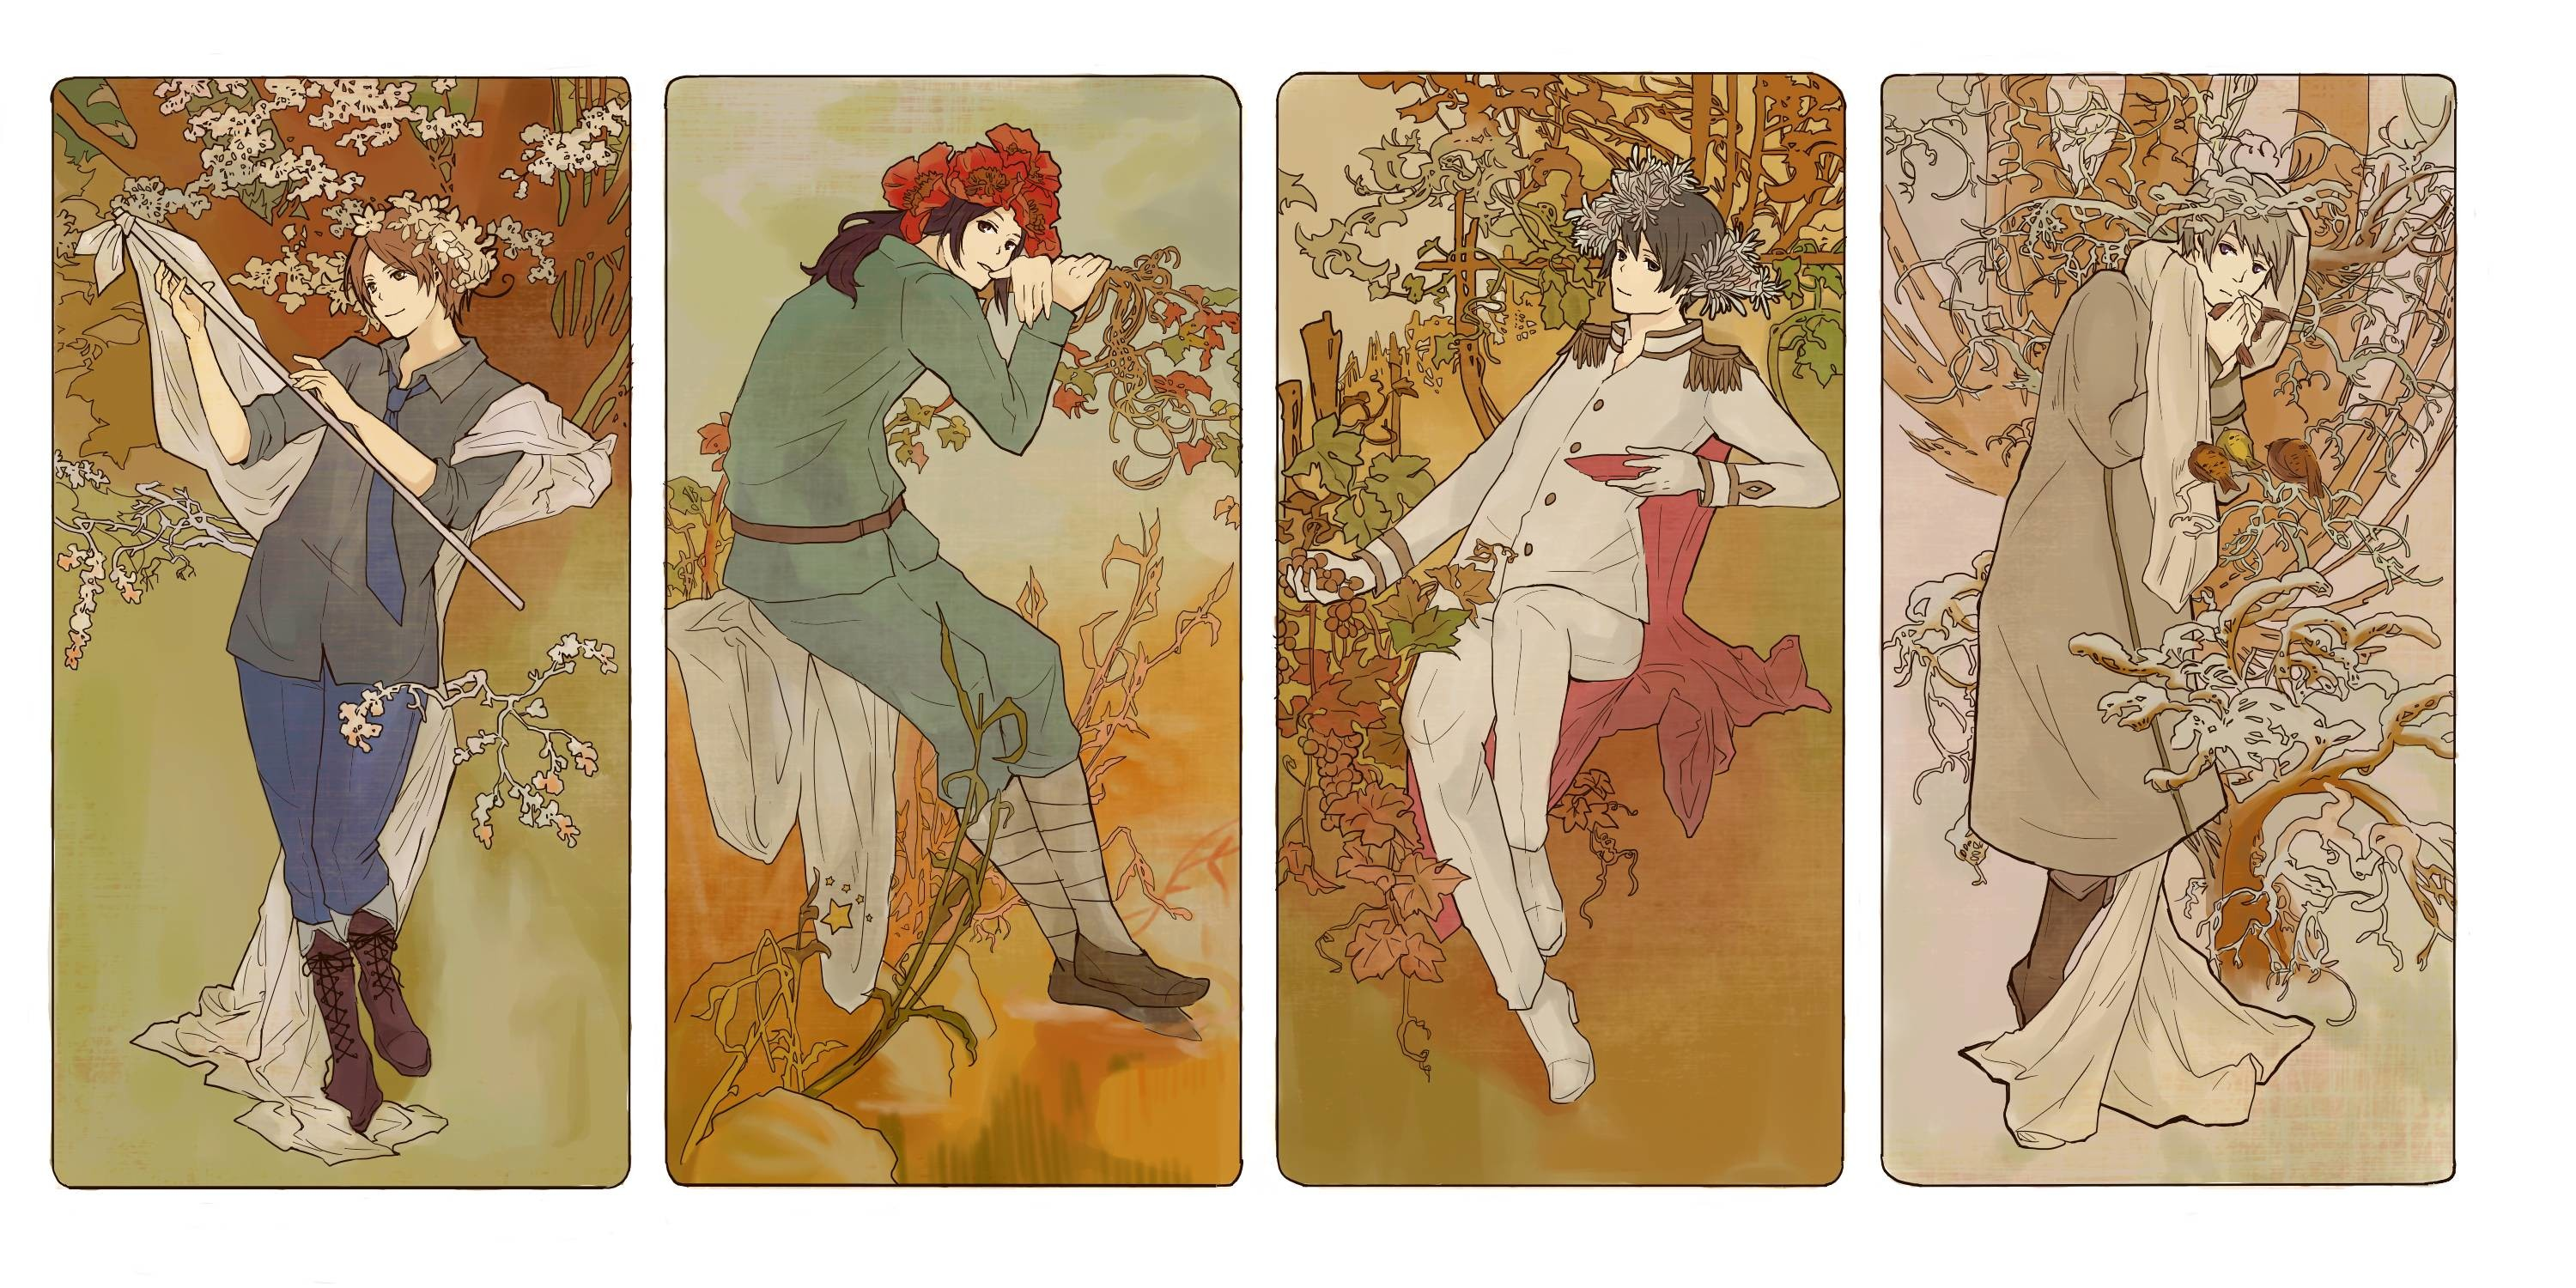 3000x1500 Art Nouveau, Hetalia, Axis Powers, Artwork, Wallpaper, Html, Art Work,  Wallpaper Desktop, Screen Wallpaper